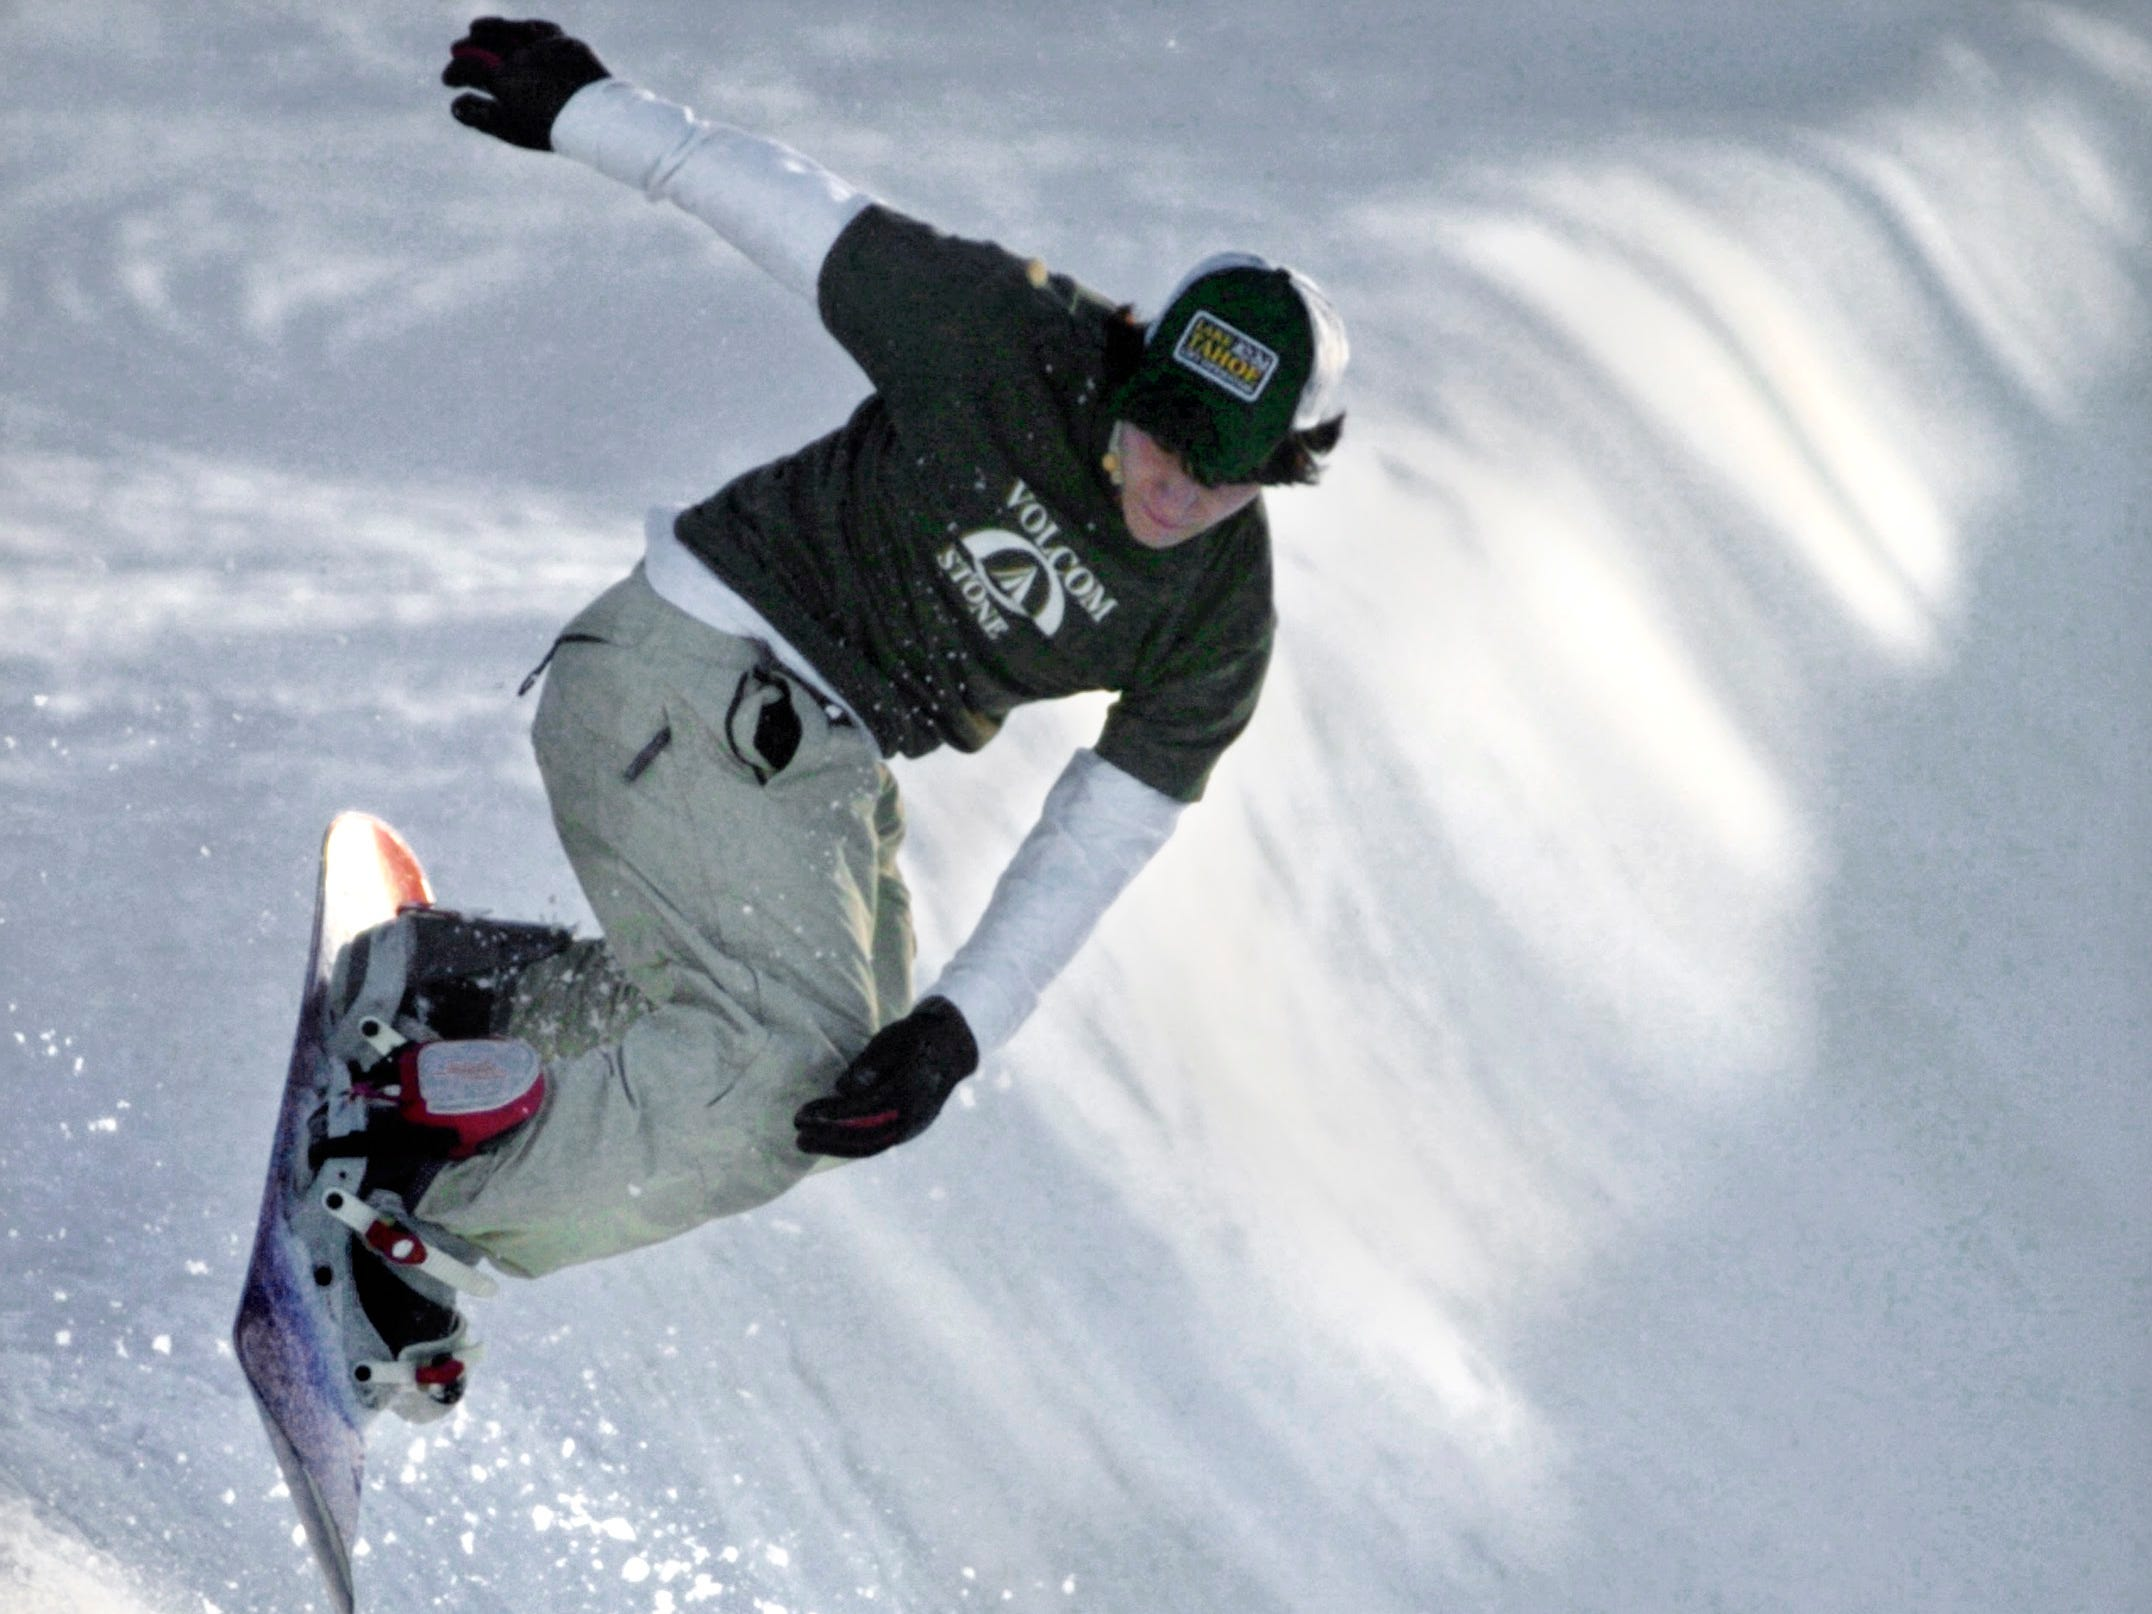 The Half-pipe at Ski Roundtop December 2003.